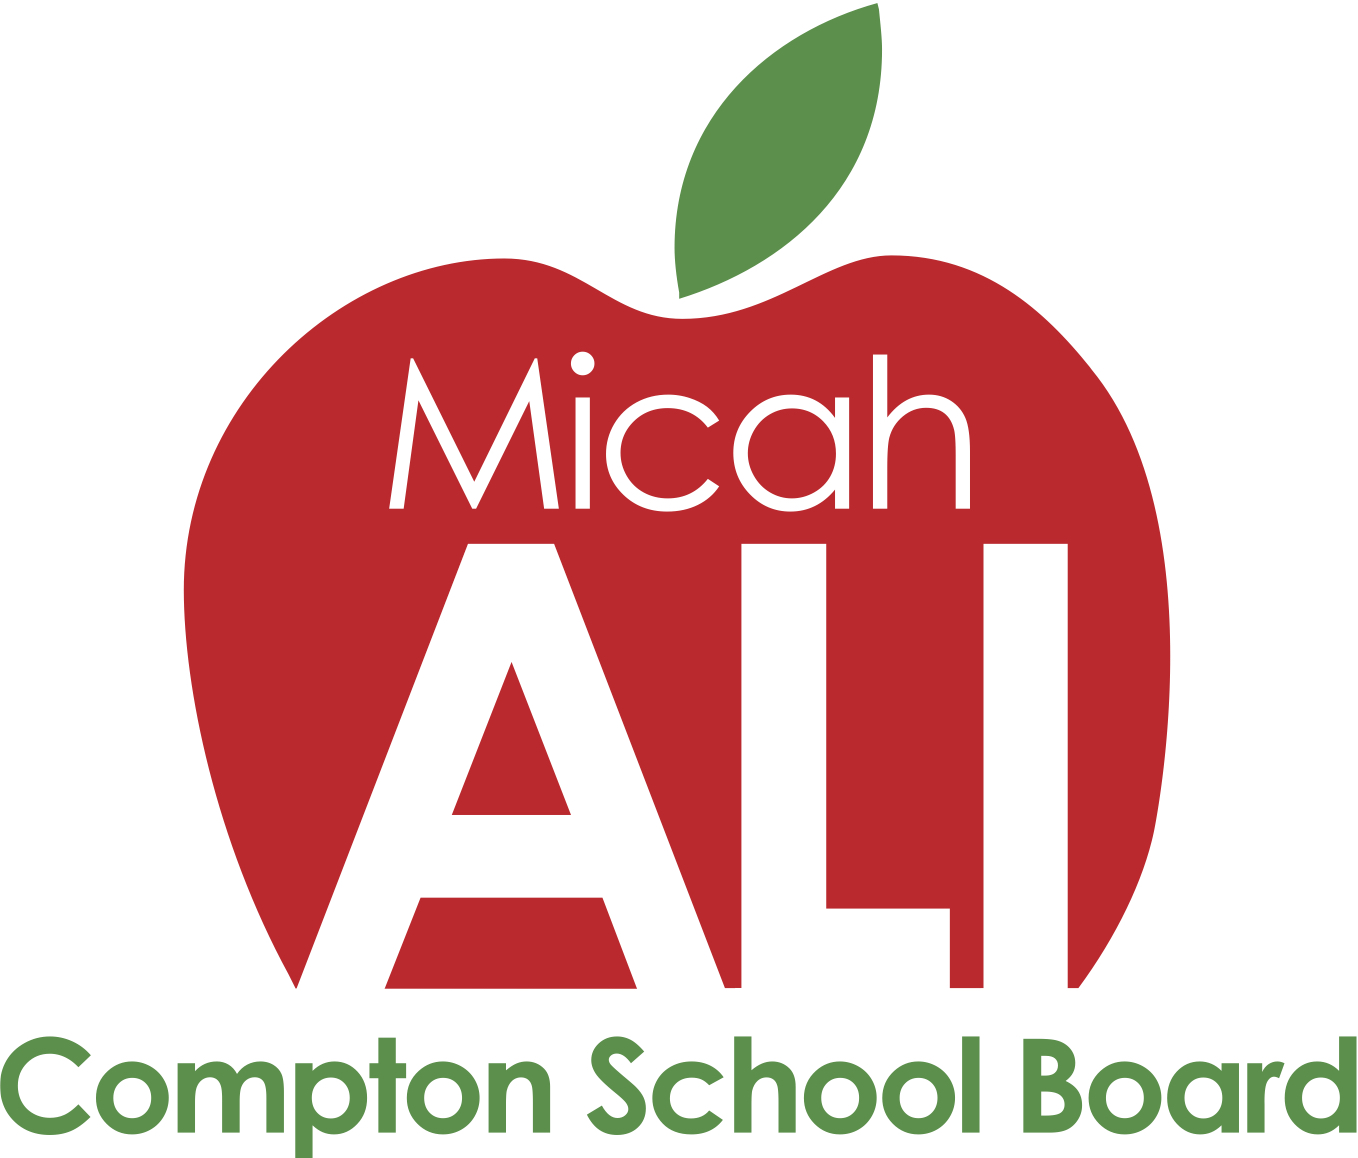 Micah Ali for Compton School Board